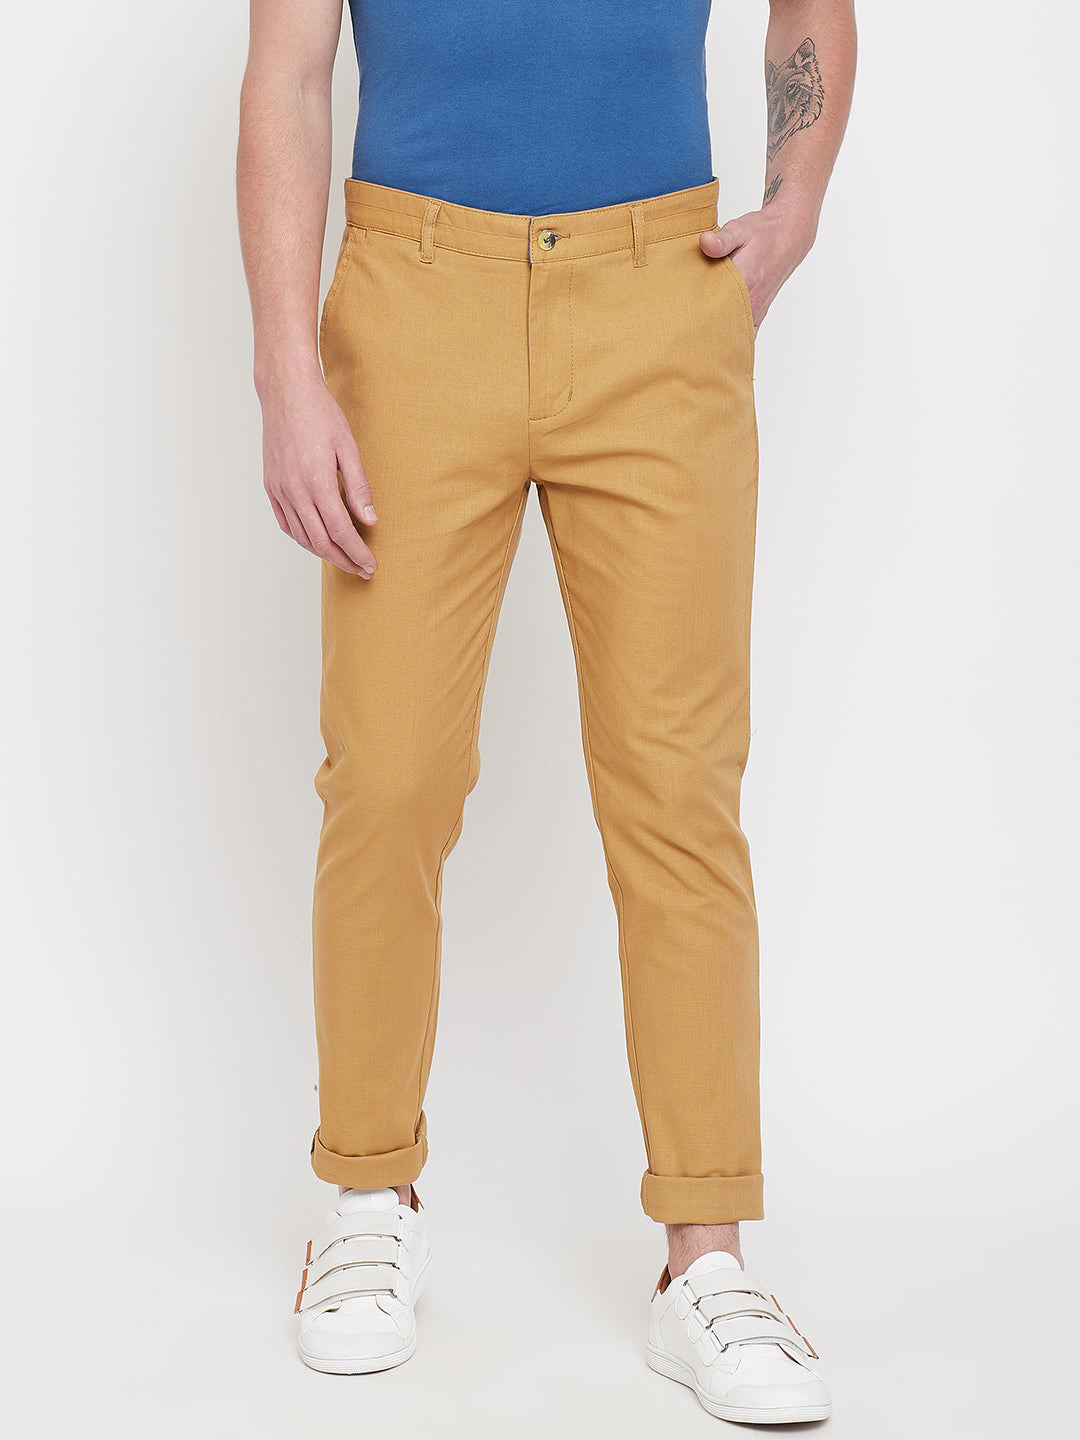 JUMP USA Men Beige Casual Slim Fit Trousers - JUMP USA